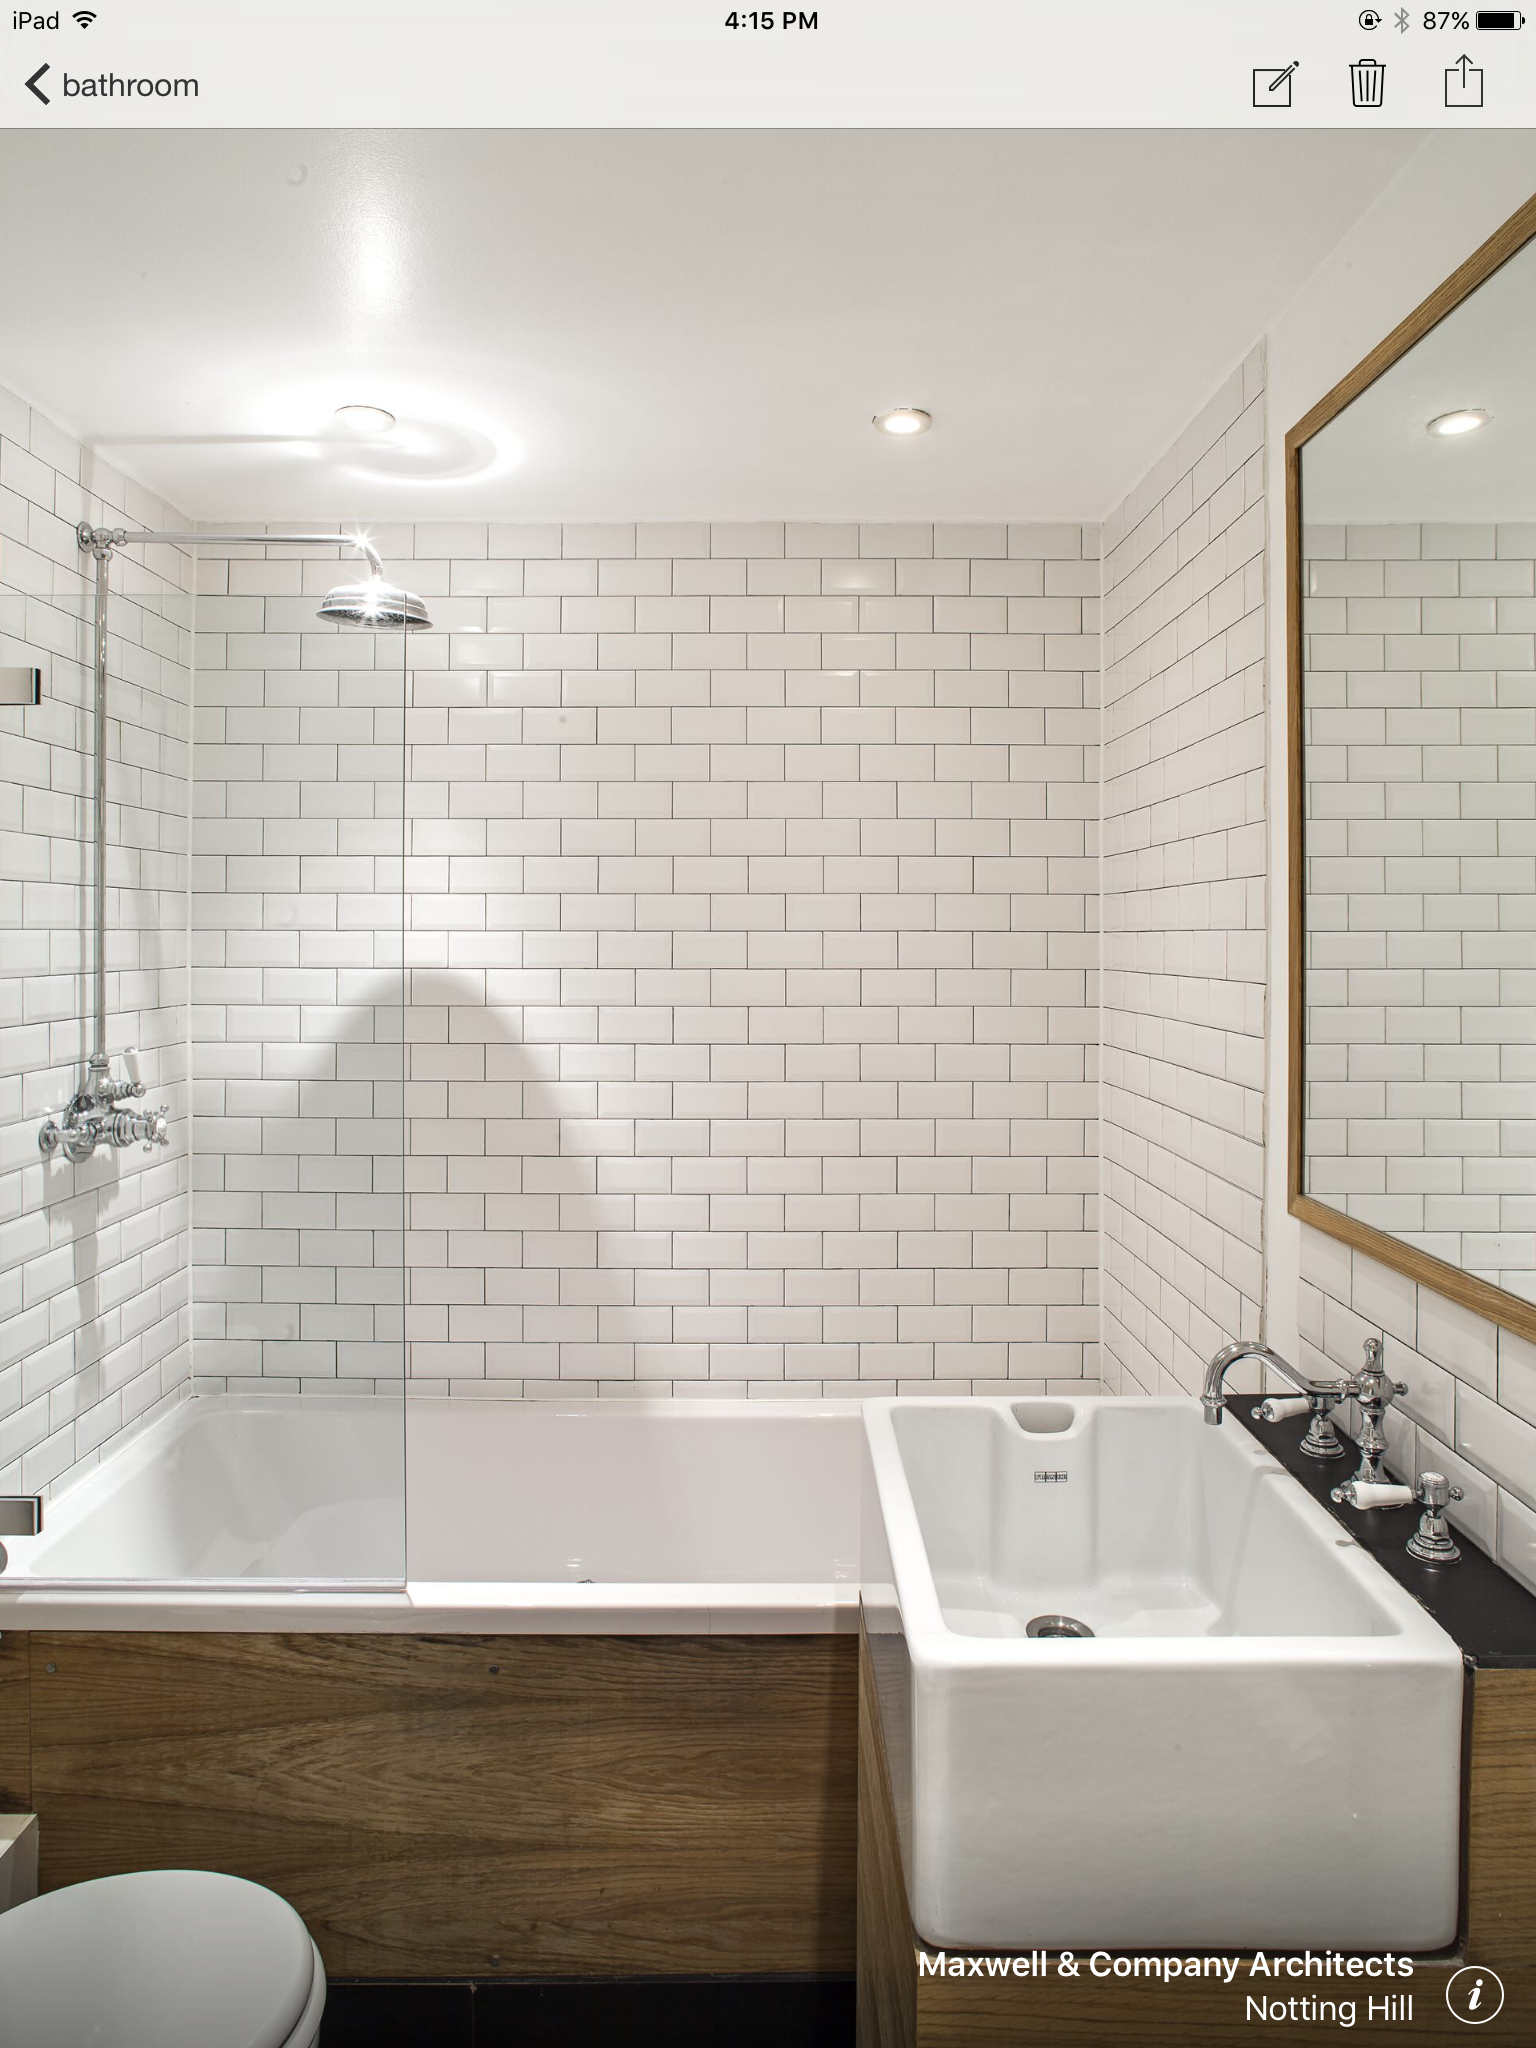 Shower / bath do not need to be very large. I like the tiles (subway tiles).